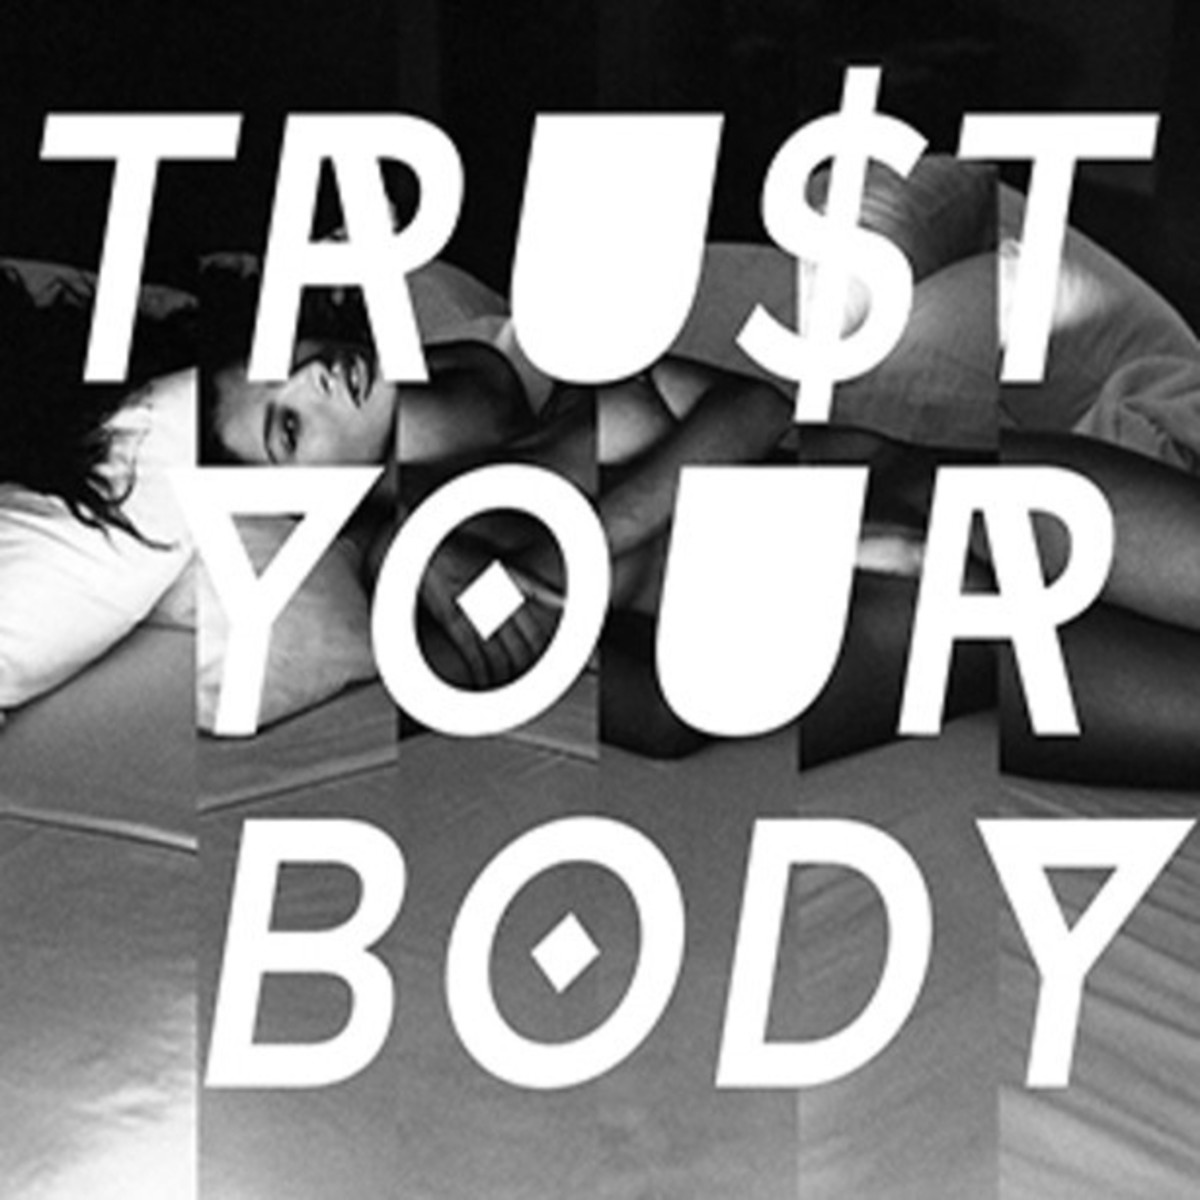 EDM Download: Tiga X Jori Hulkkonen - Trust Your Body (JΔNUΔRY BLΔCK VERSION)